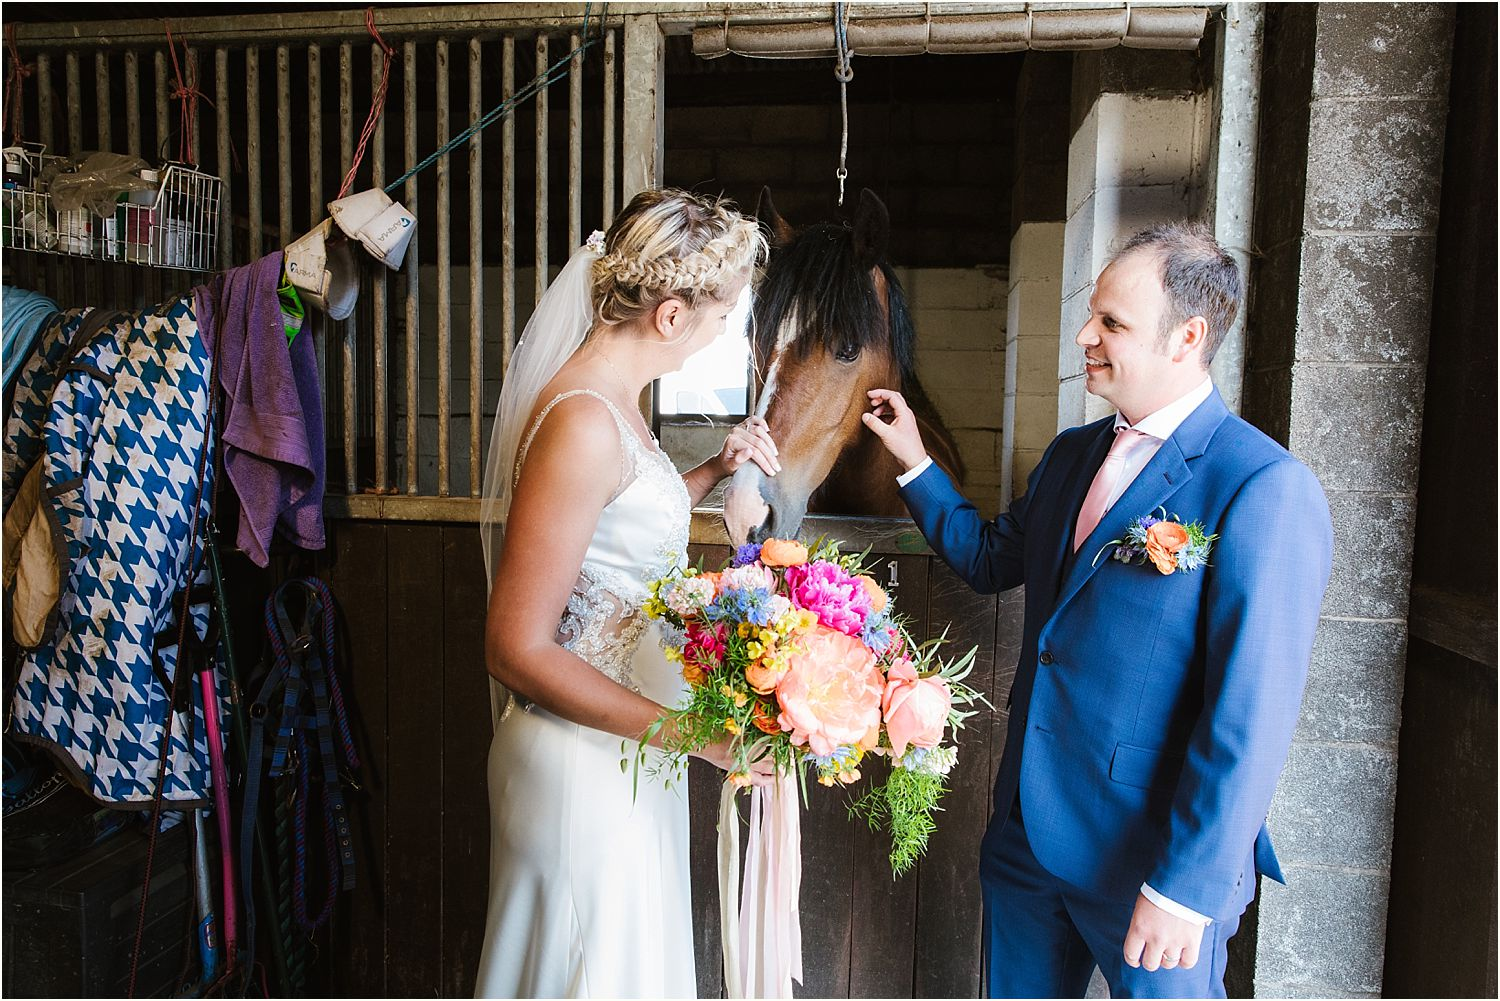 Bride and bridegroom with horse in stable at rural Lancashire wedding